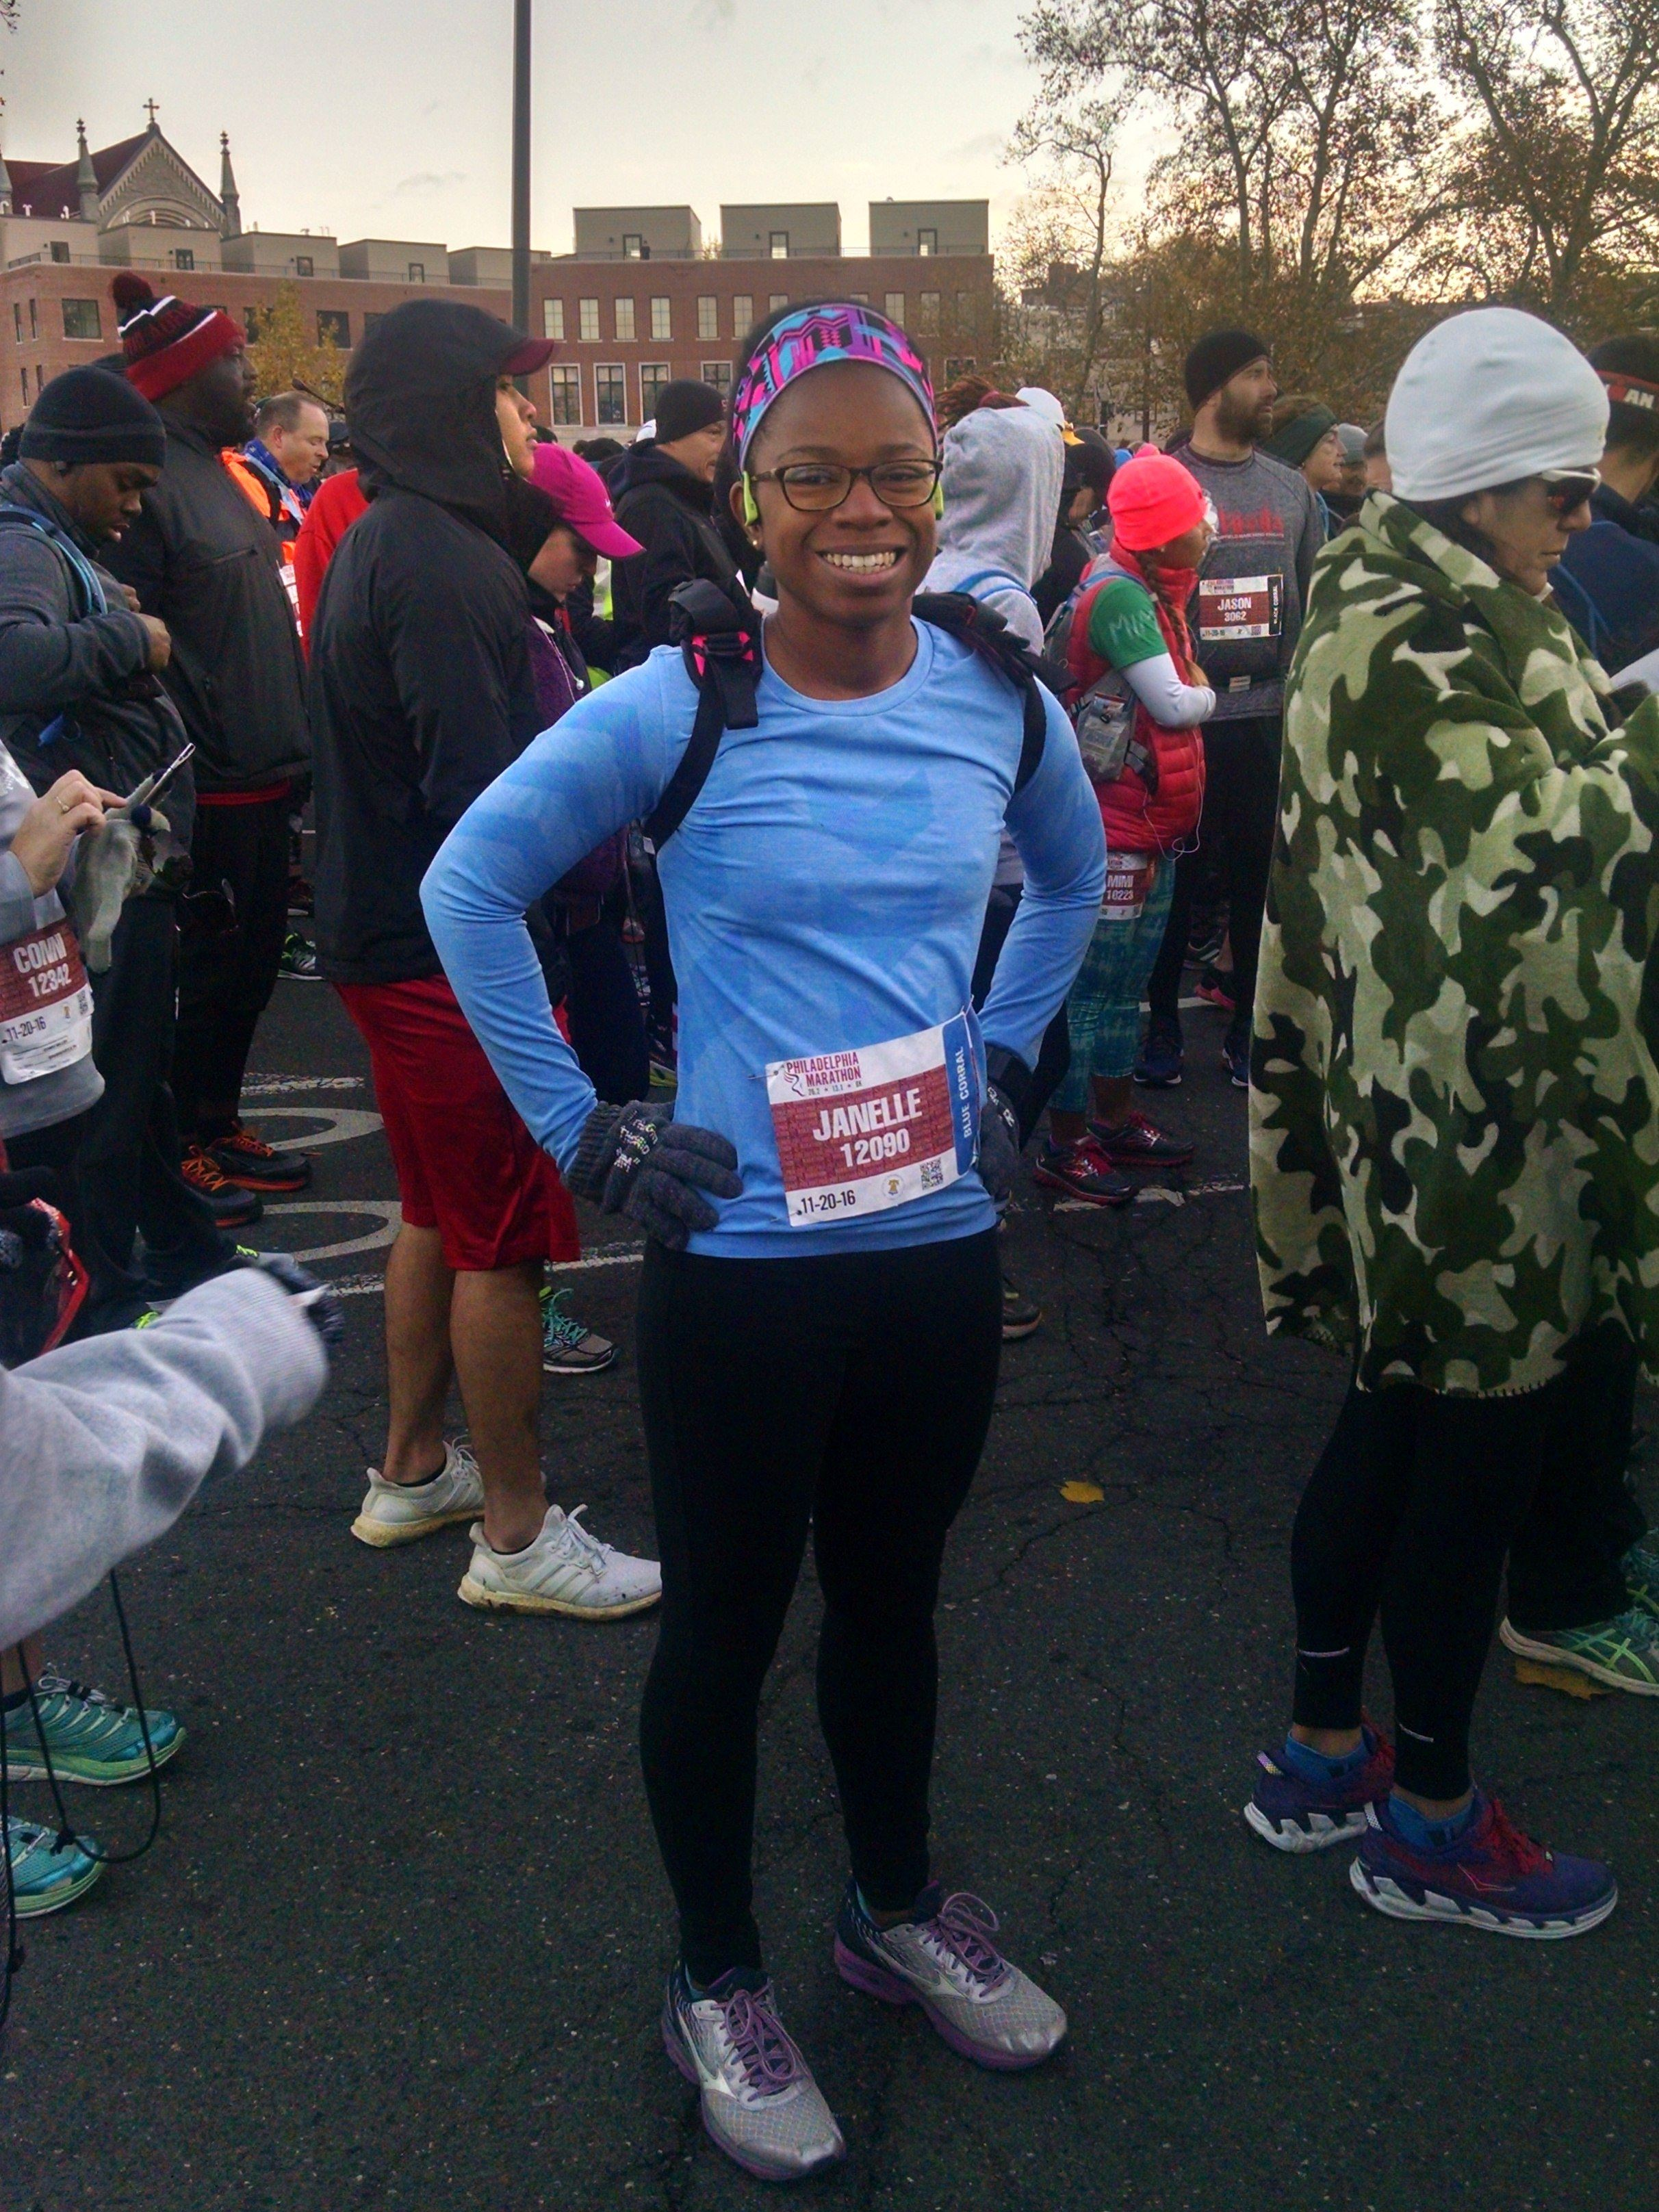 Me at the start line